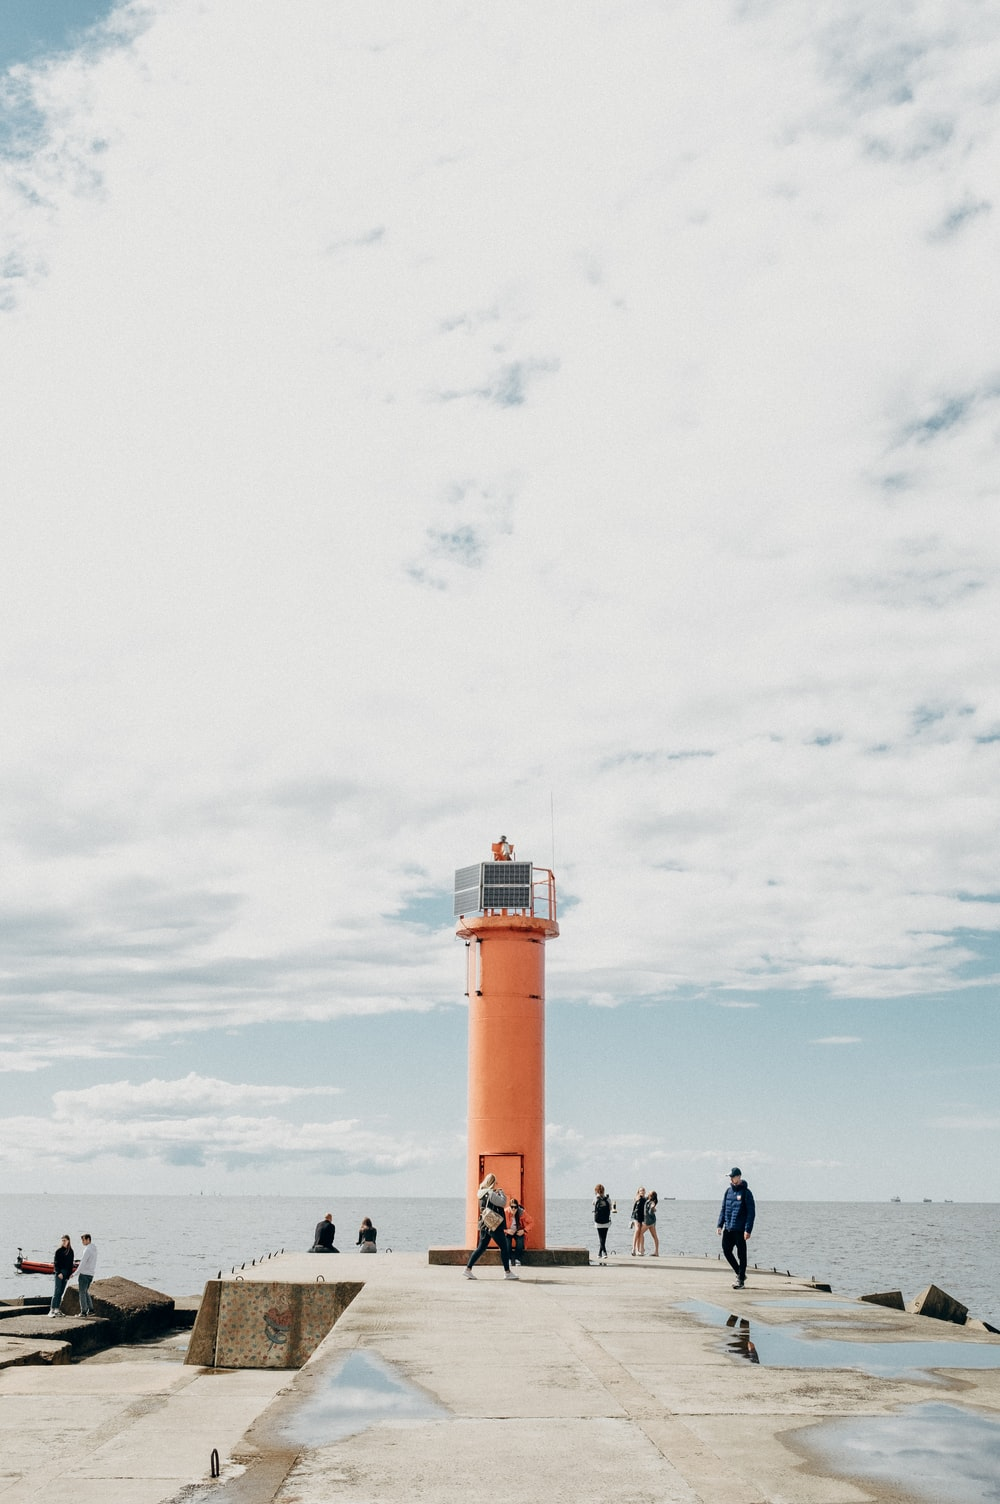 people standing near lighthouse under white clouds during daytime